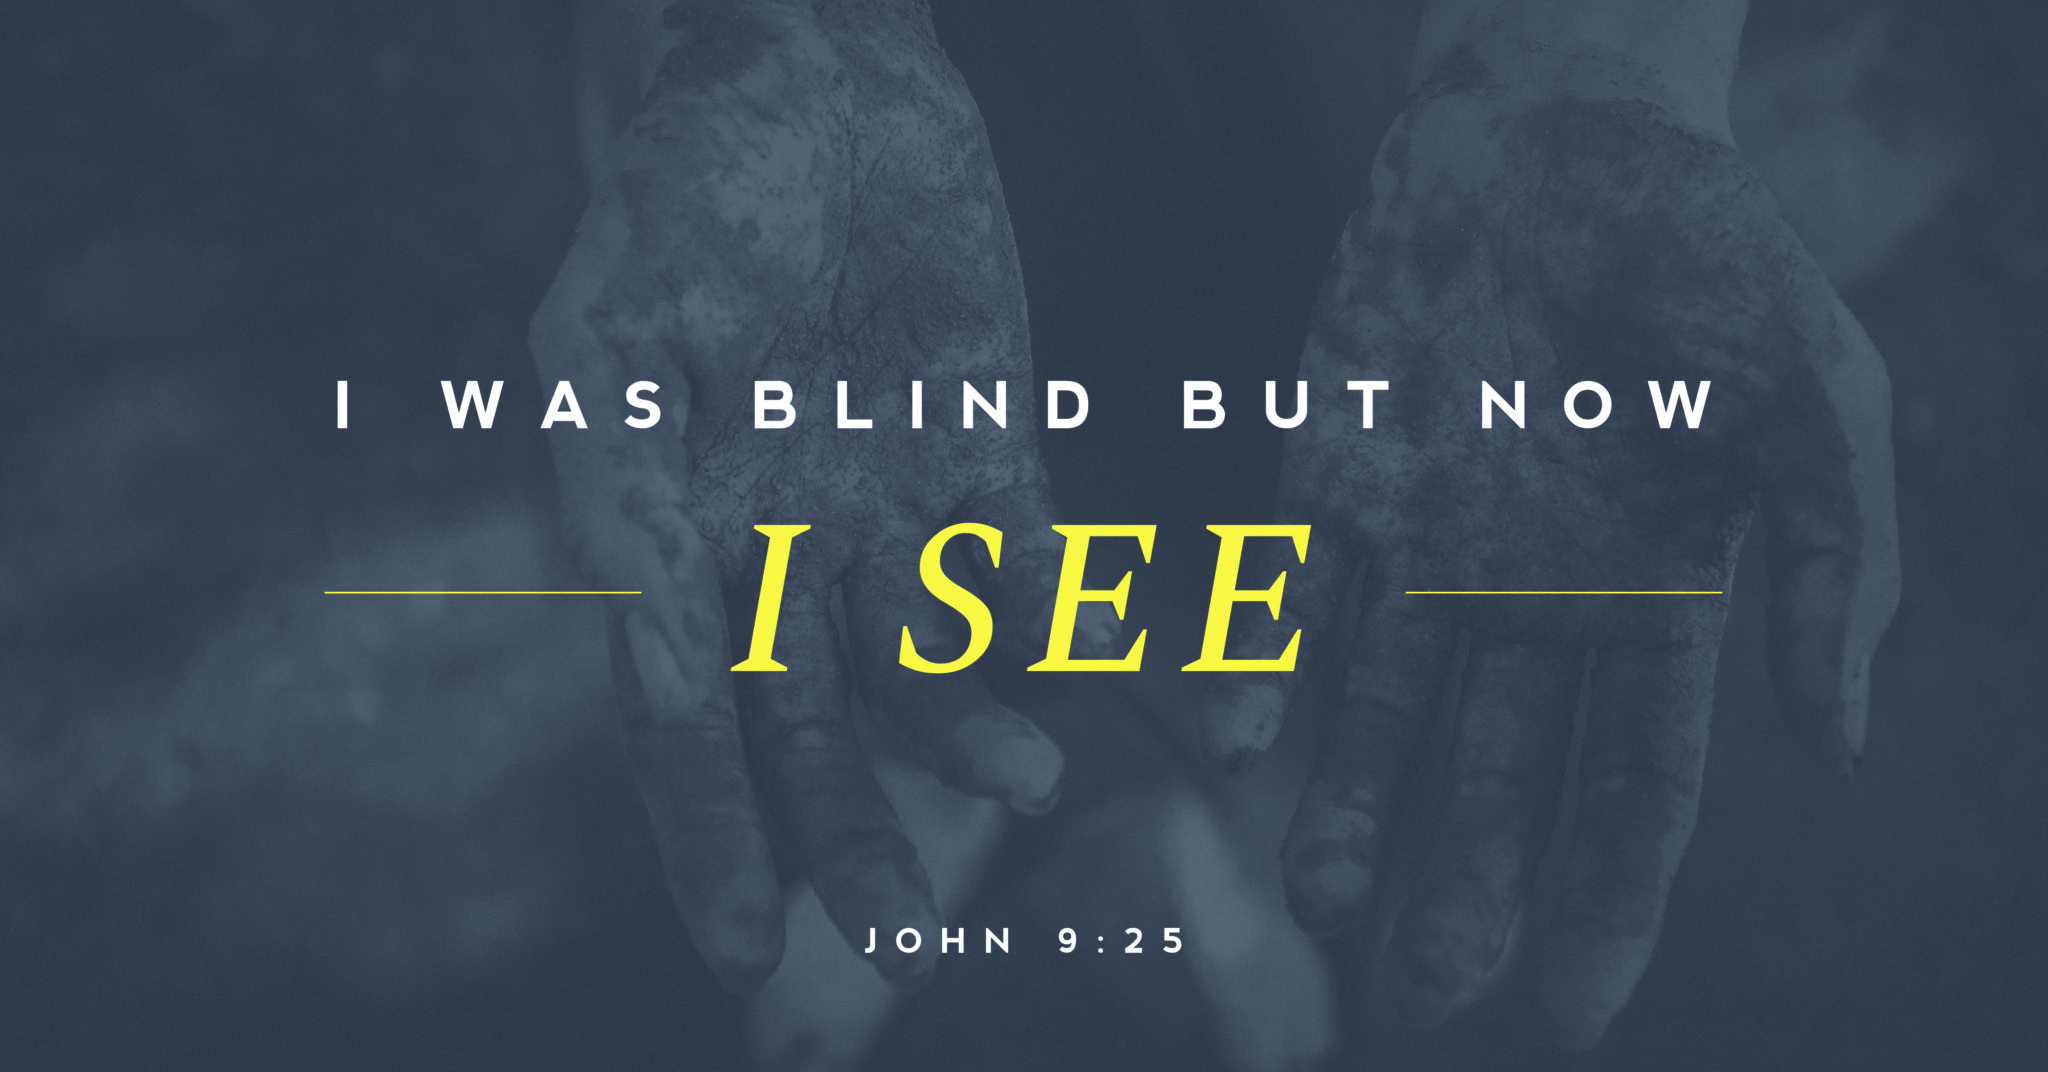 """A picture of hands with dirt on them with text overtop that reads, """"I wasblind but now I see."""" (John 9:25)"""